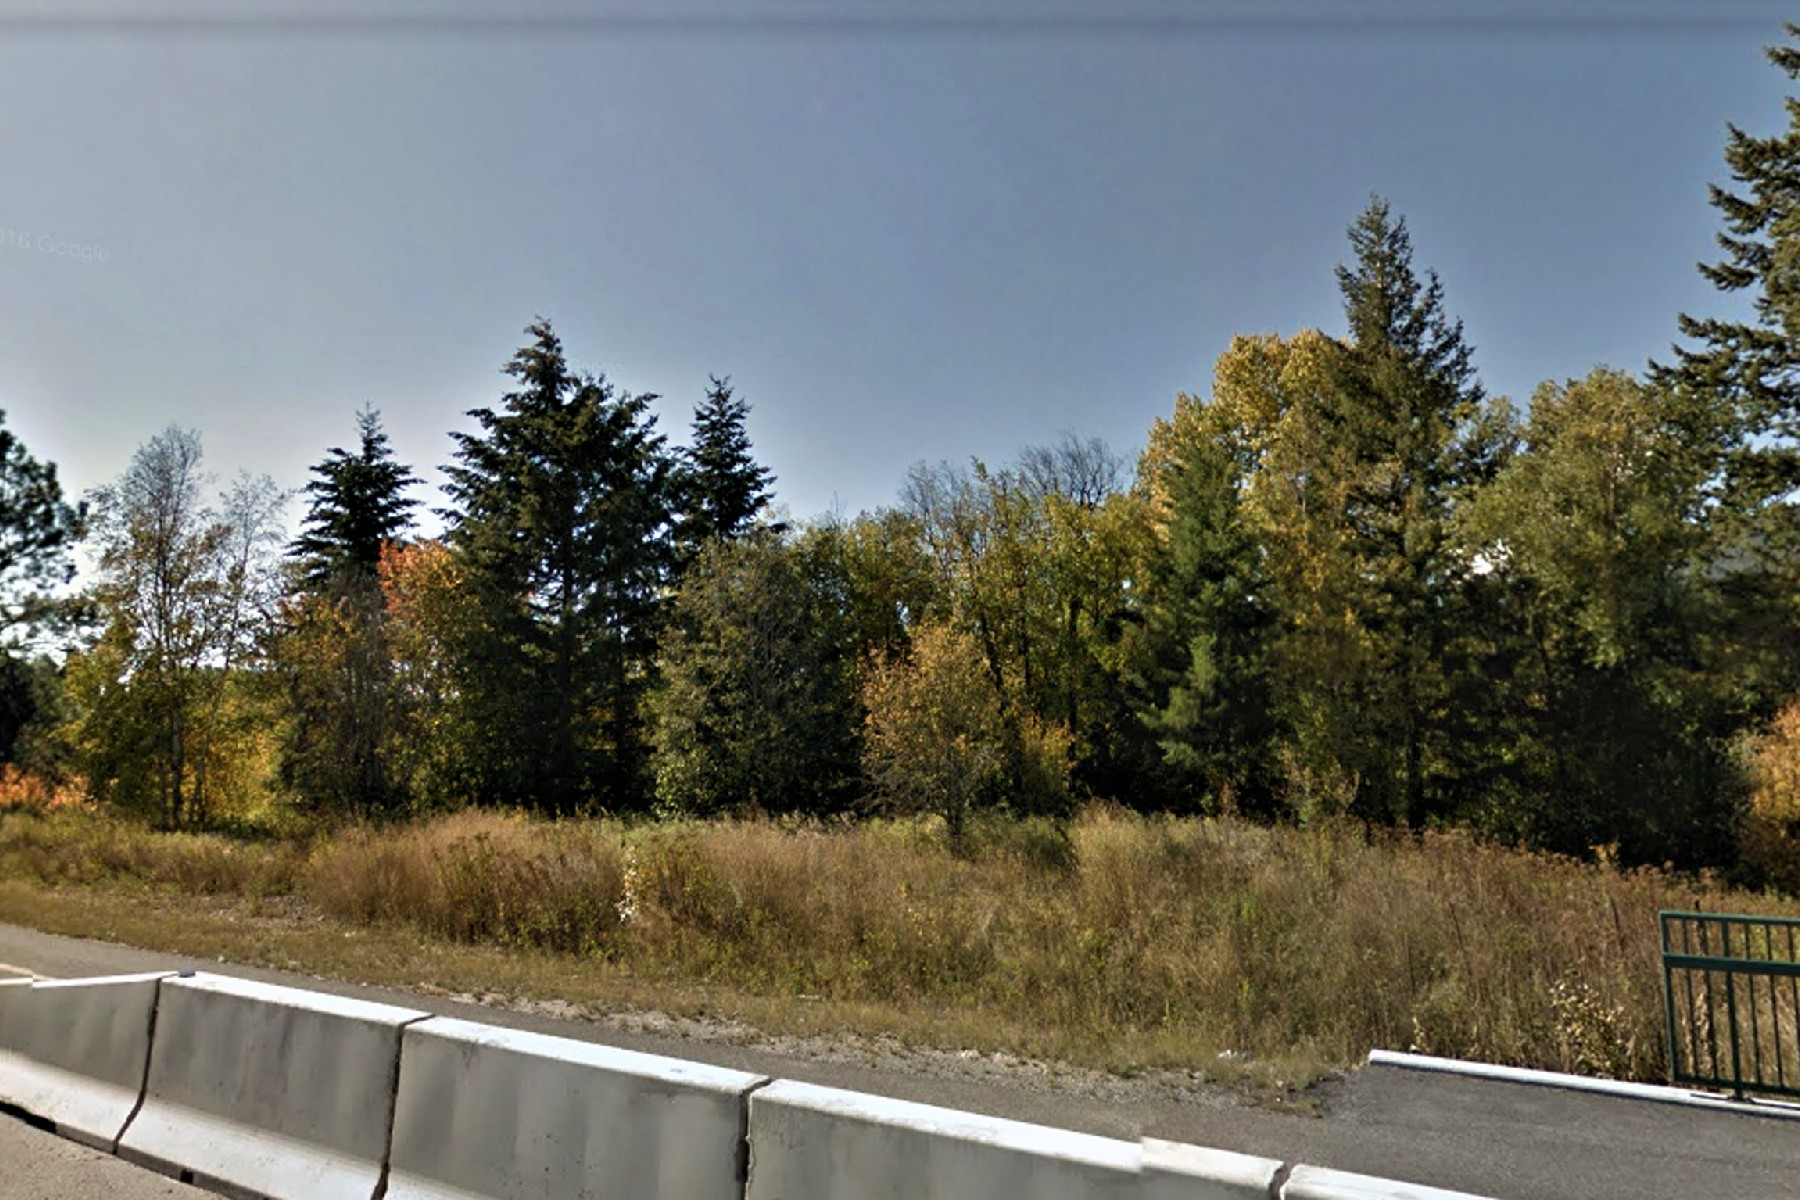 Land for Sale at Ponderay Commercial Lot 0 Highway 95 Ponderay, Idaho 83852 United States